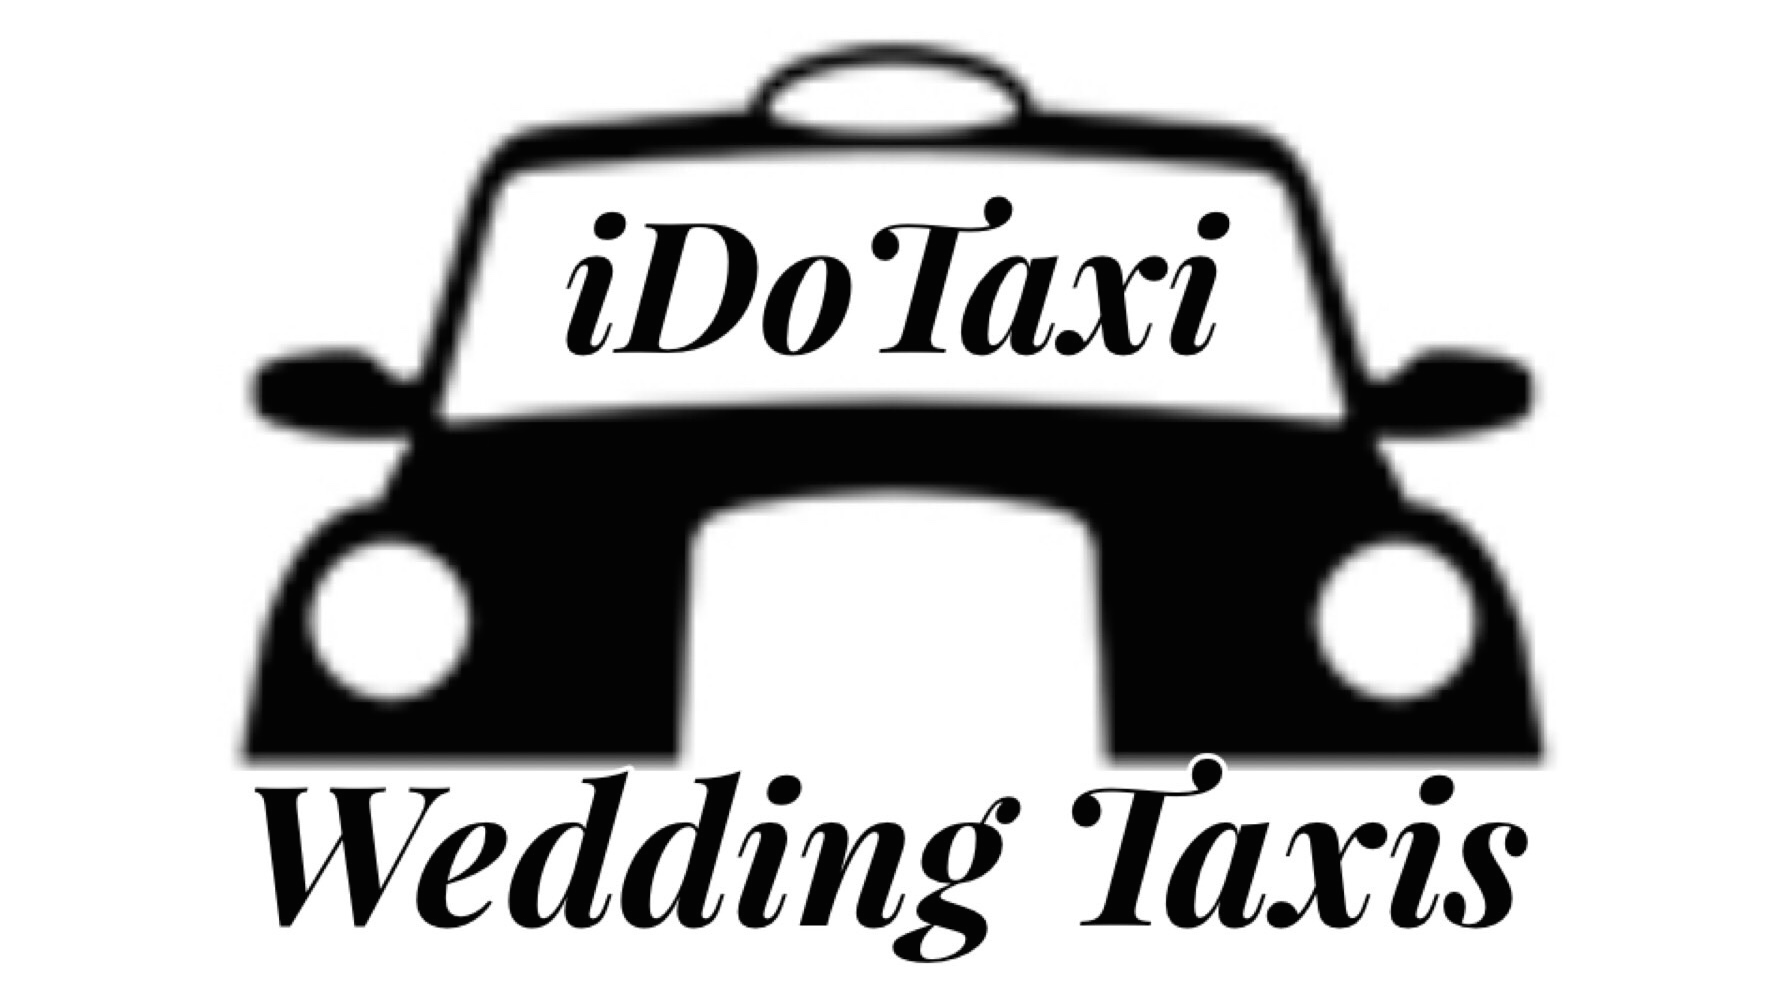 Wedding Taxis / Cabs UK iDoTaxi.co.uk